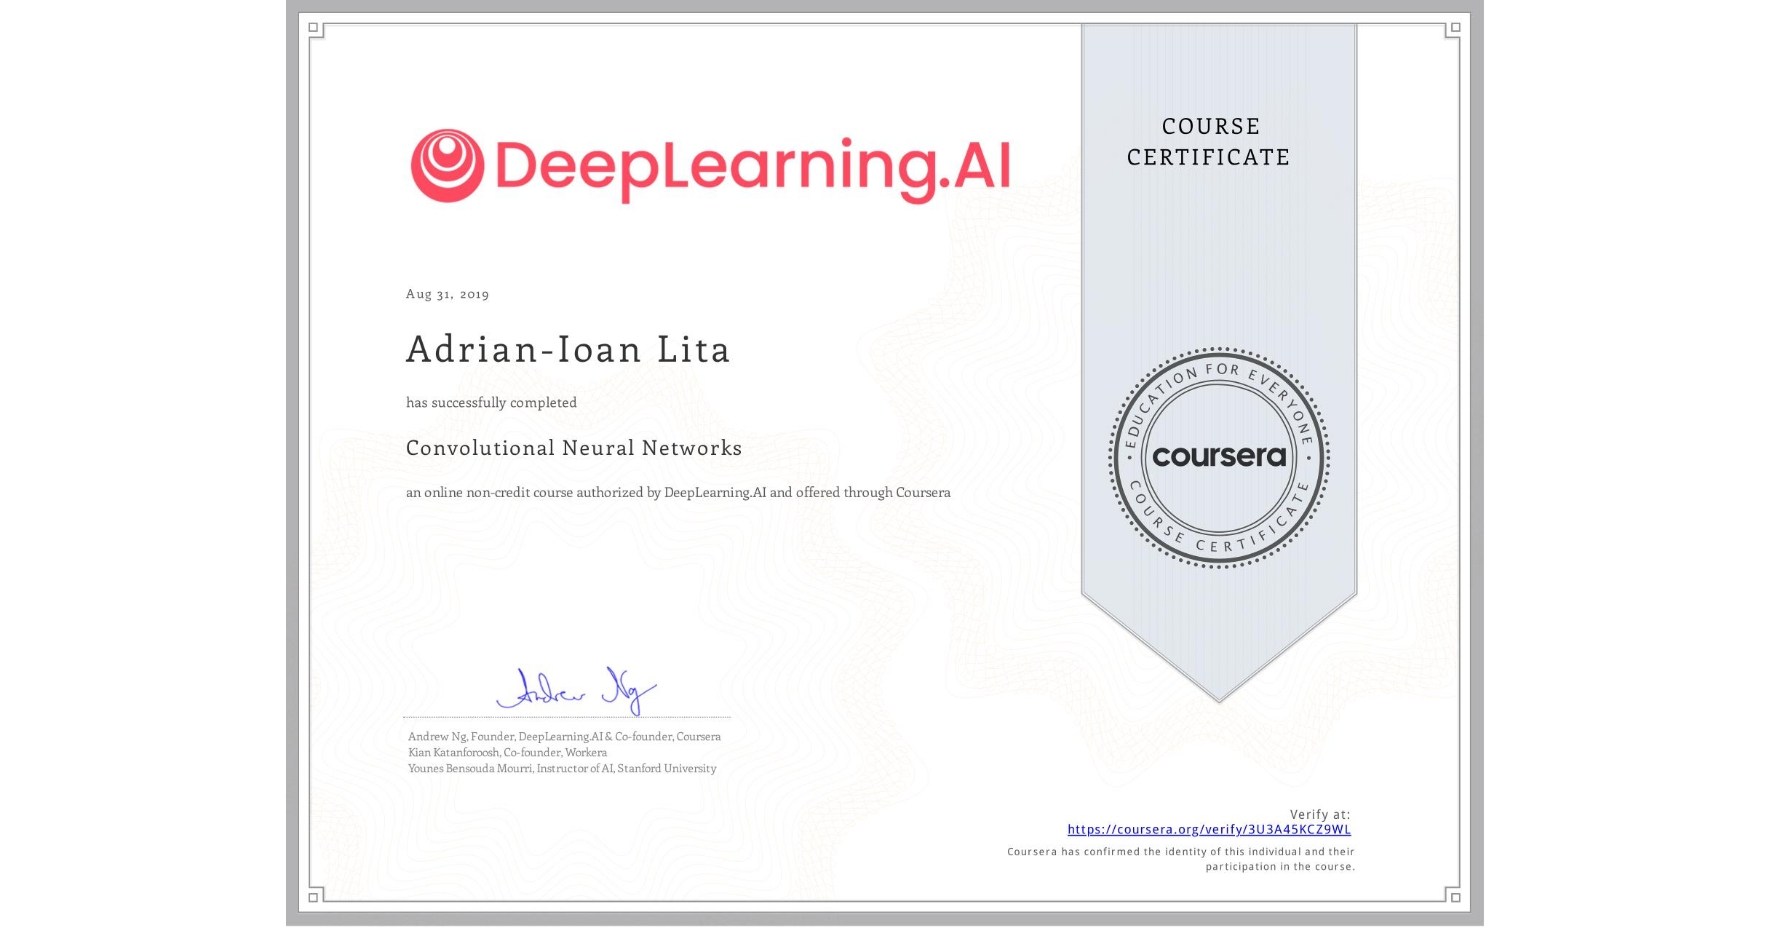 View certificate for Adrian-Ioan Lita, Convolutional Neural Networks, an online non-credit course authorized by DeepLearning.AI and offered through Coursera